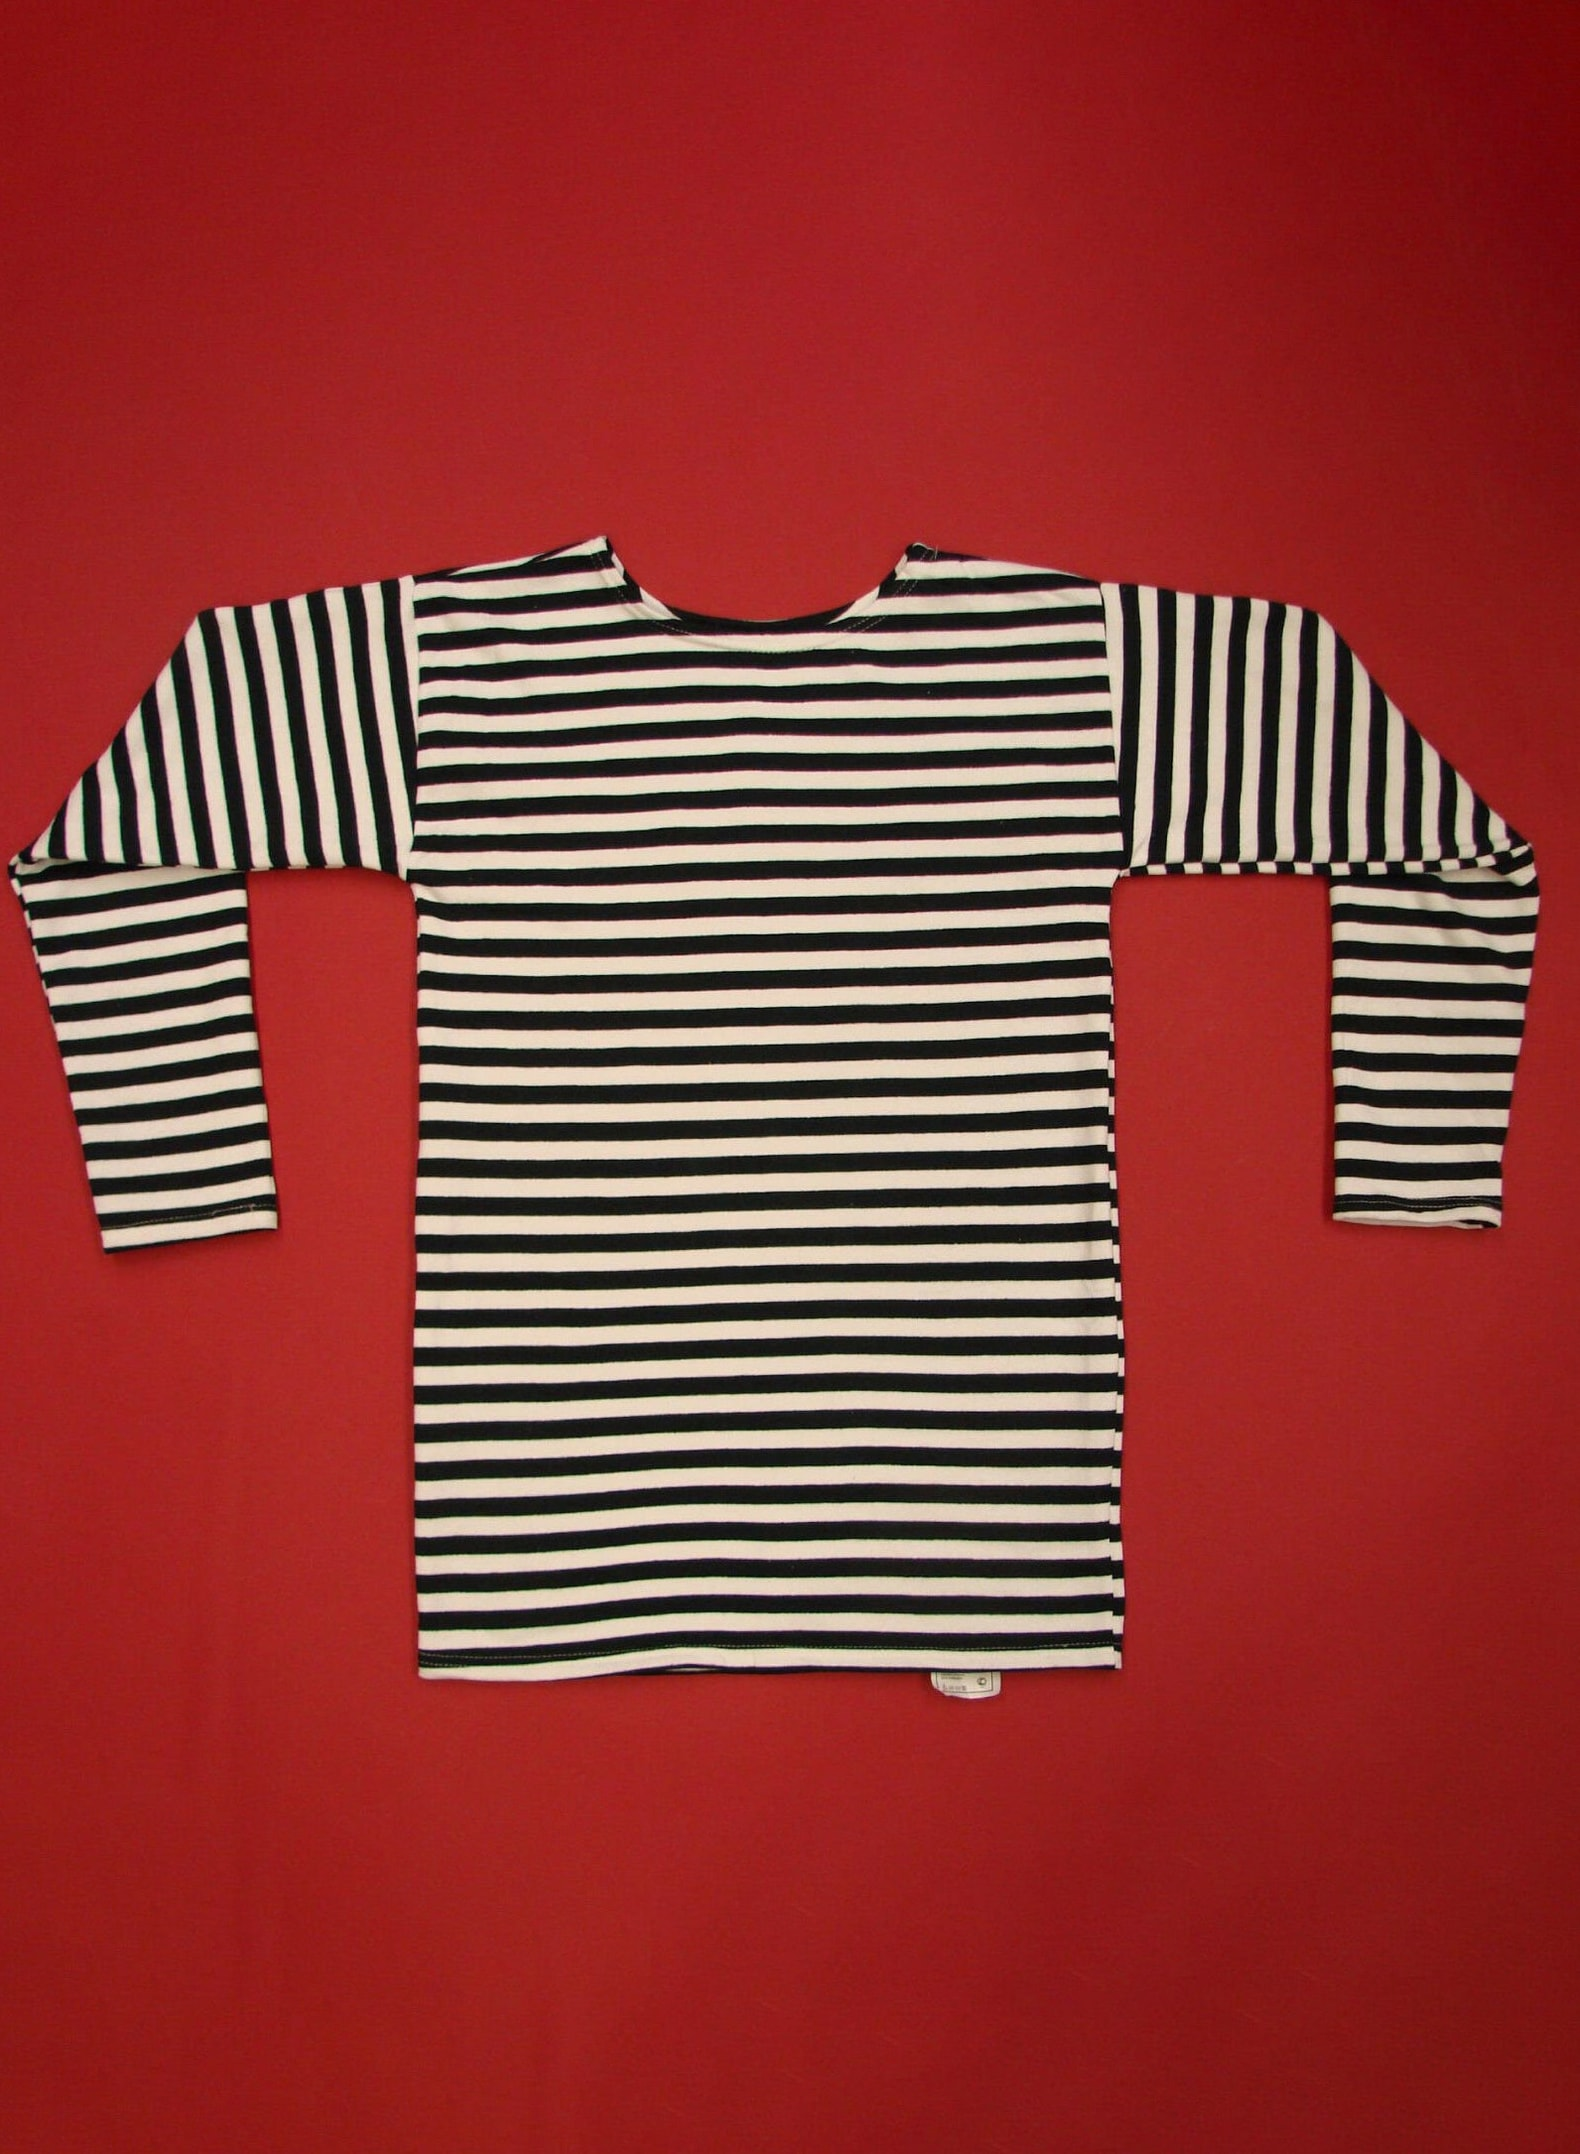 Russian Telnyashka Shirt Black Striped WINTER Type 100% Cotton + Factory Tag High Quality Brand New Unissued Condition Soviet Navy Sailor